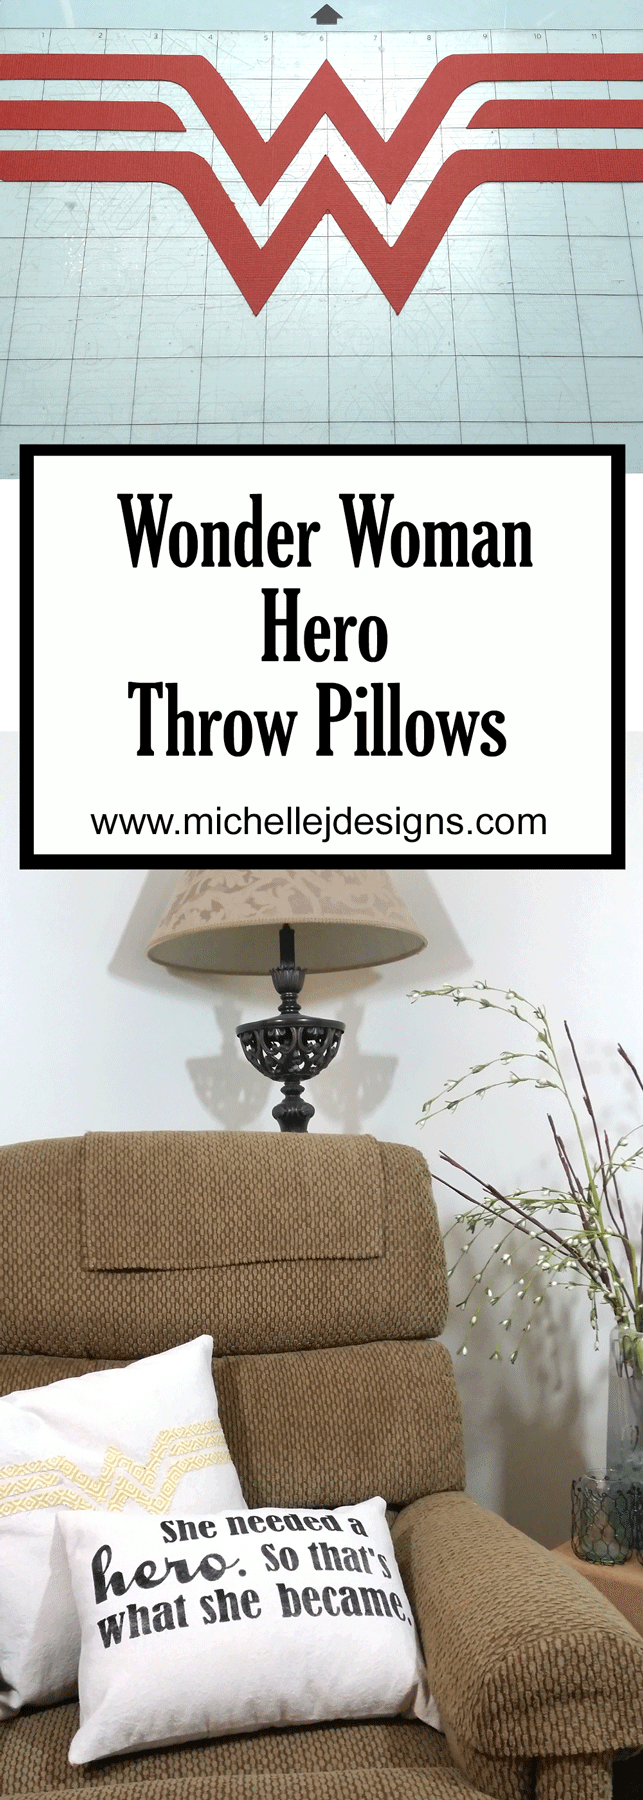 how-to-bring-out-your-inner-hero-with-wonder-woman-pillows